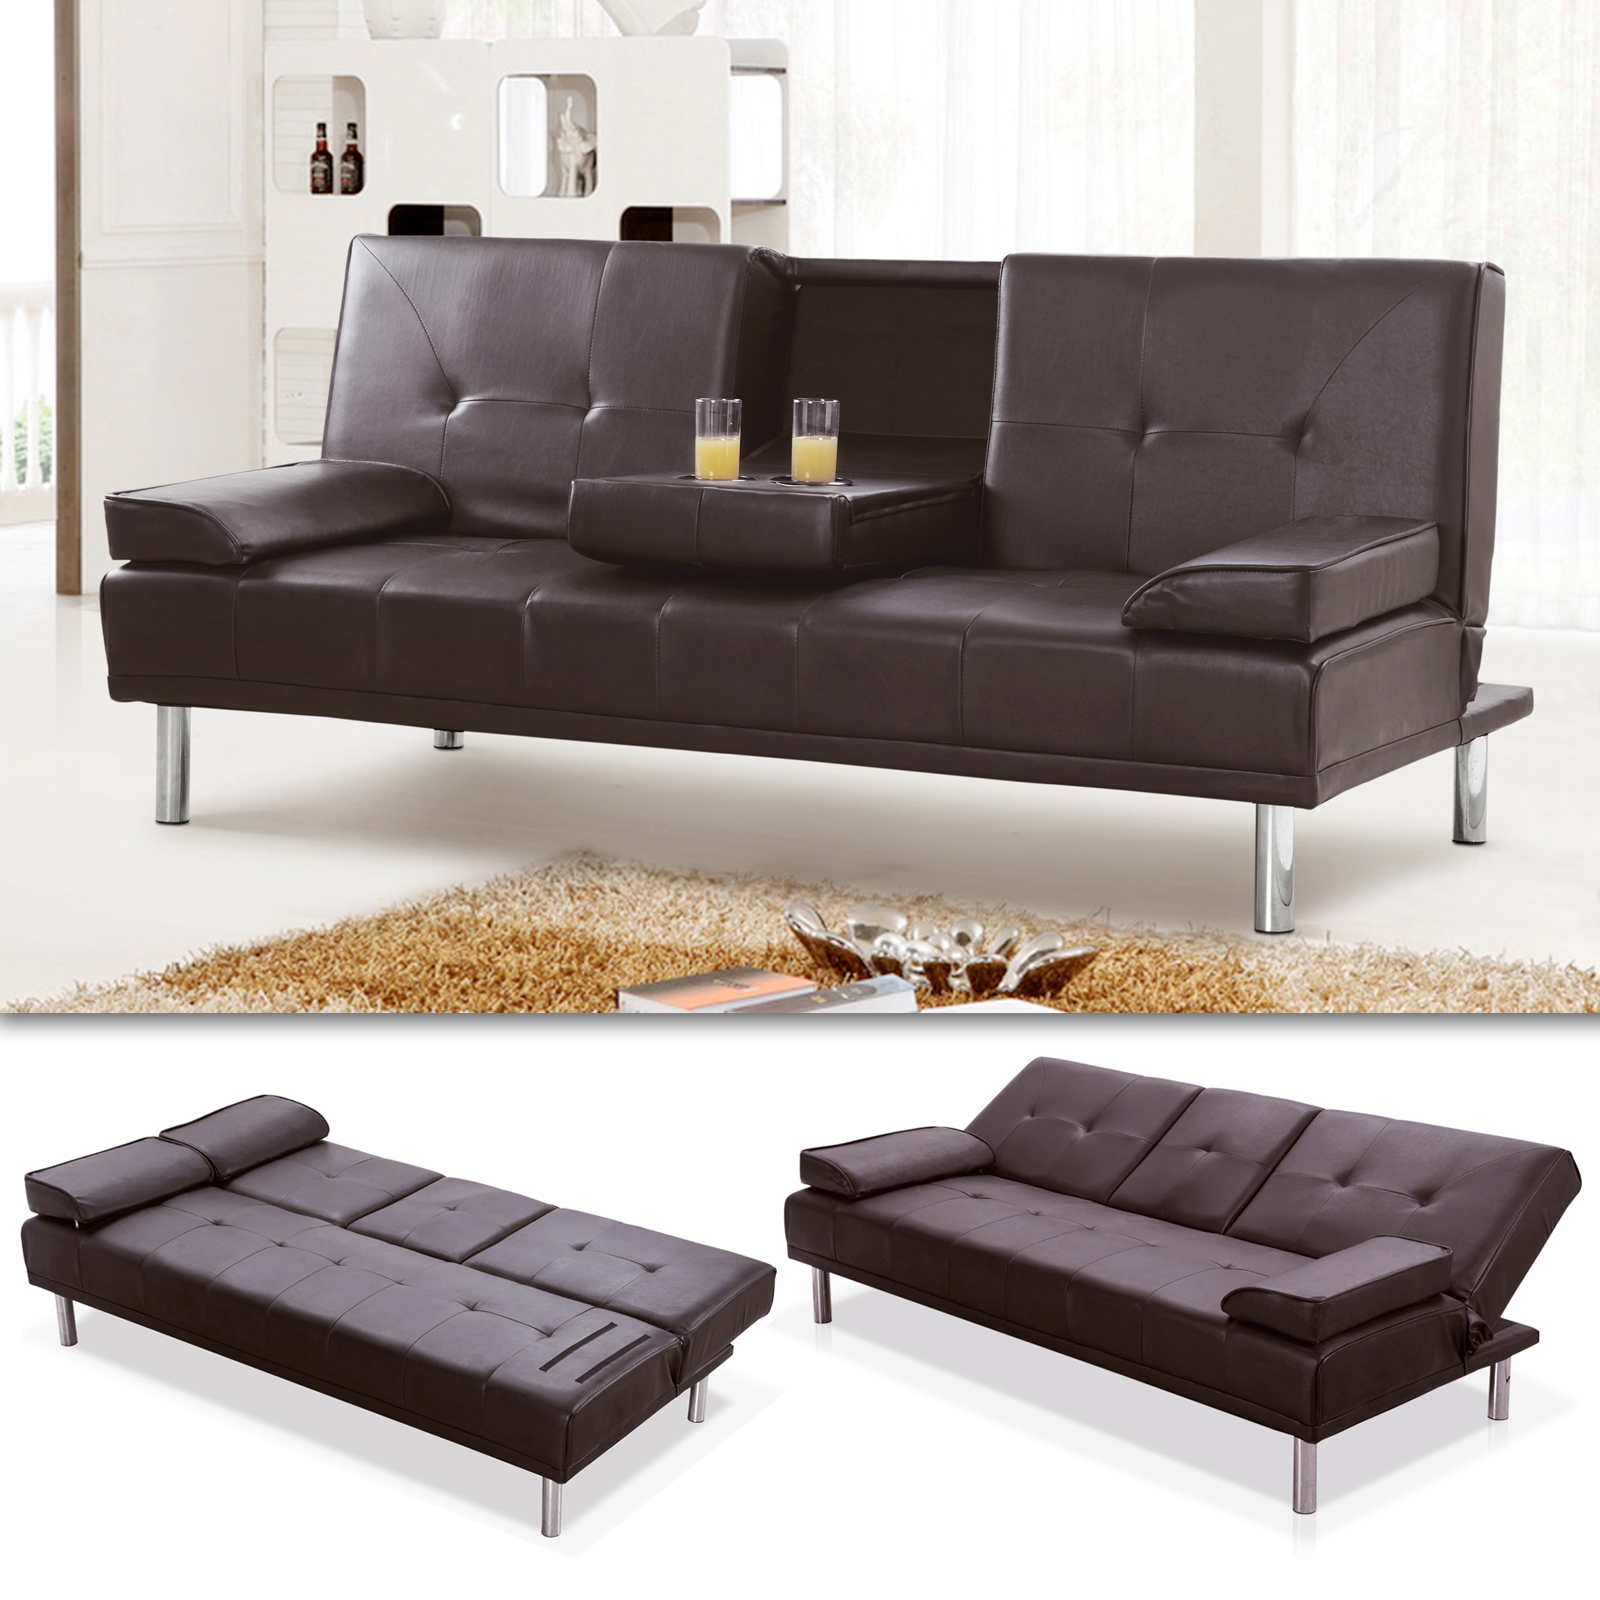 schlafsofa braun kunstleder mit getr nkehalter modernen luxus stil ebay. Black Bedroom Furniture Sets. Home Design Ideas